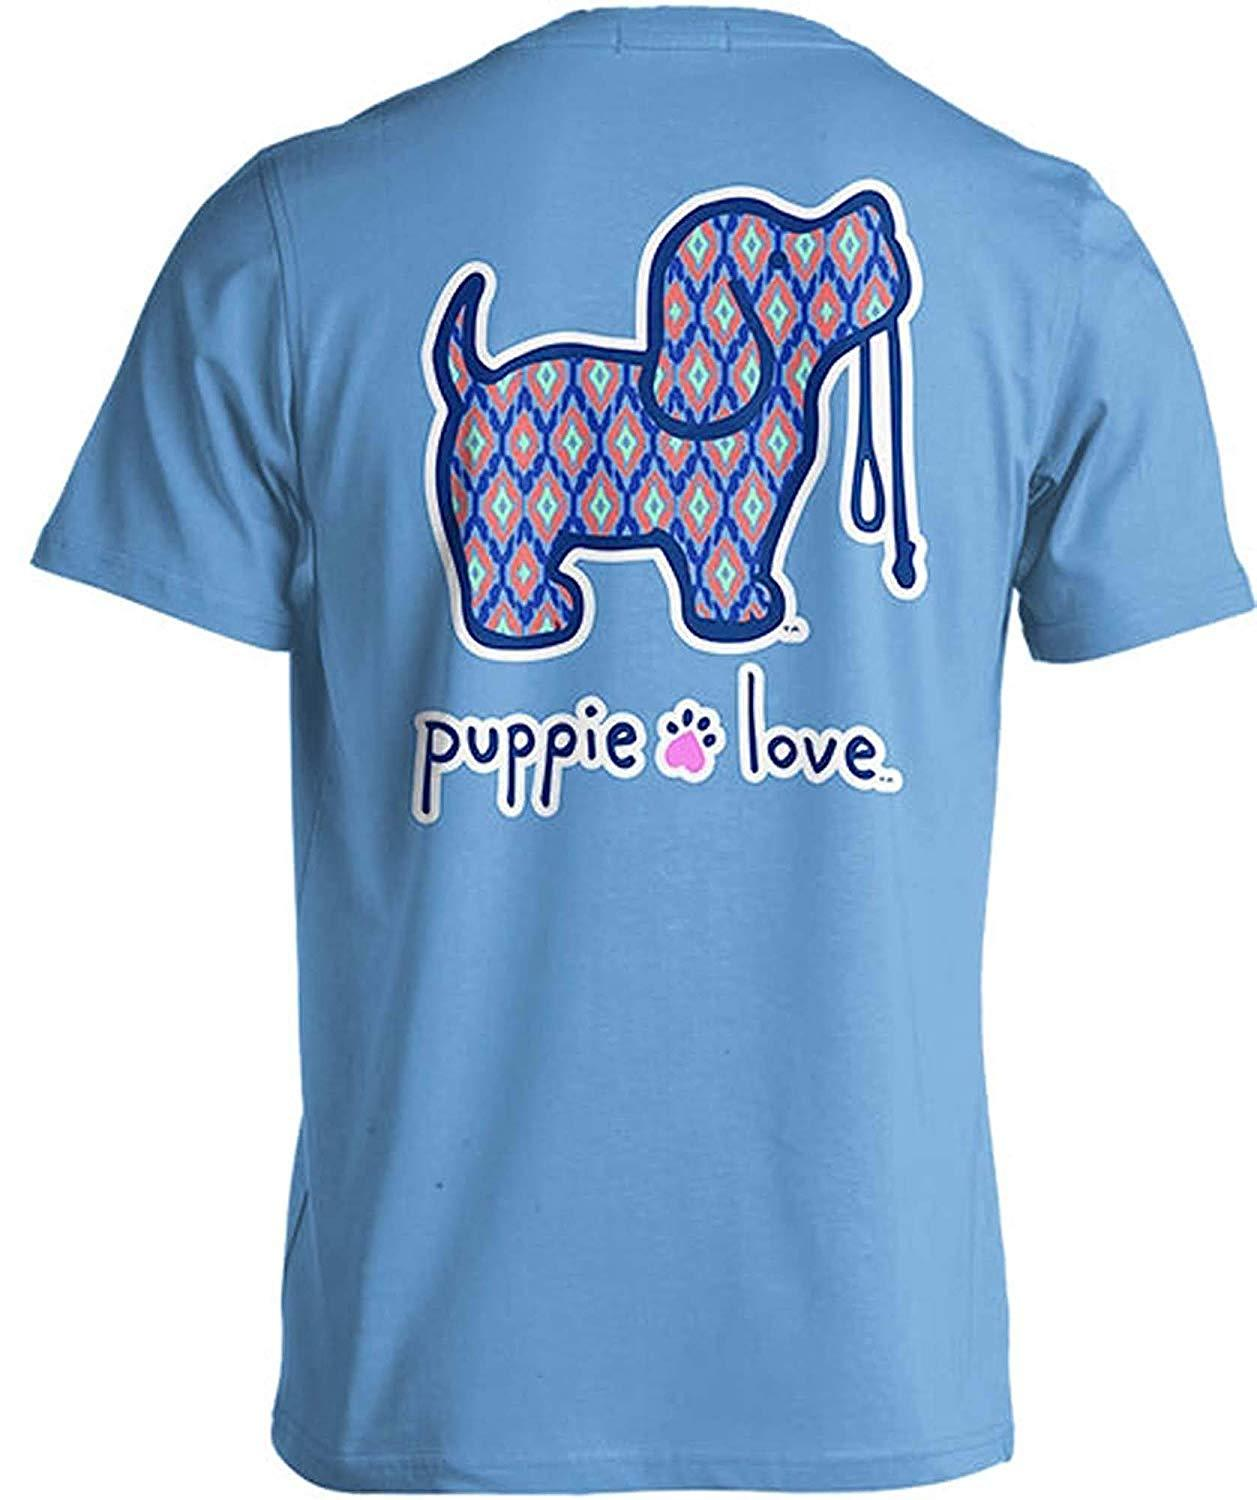 Puppie Love Rescue Dog Adult Unisex Short Sleeve Graphic T-Shirt, Ikat Pup